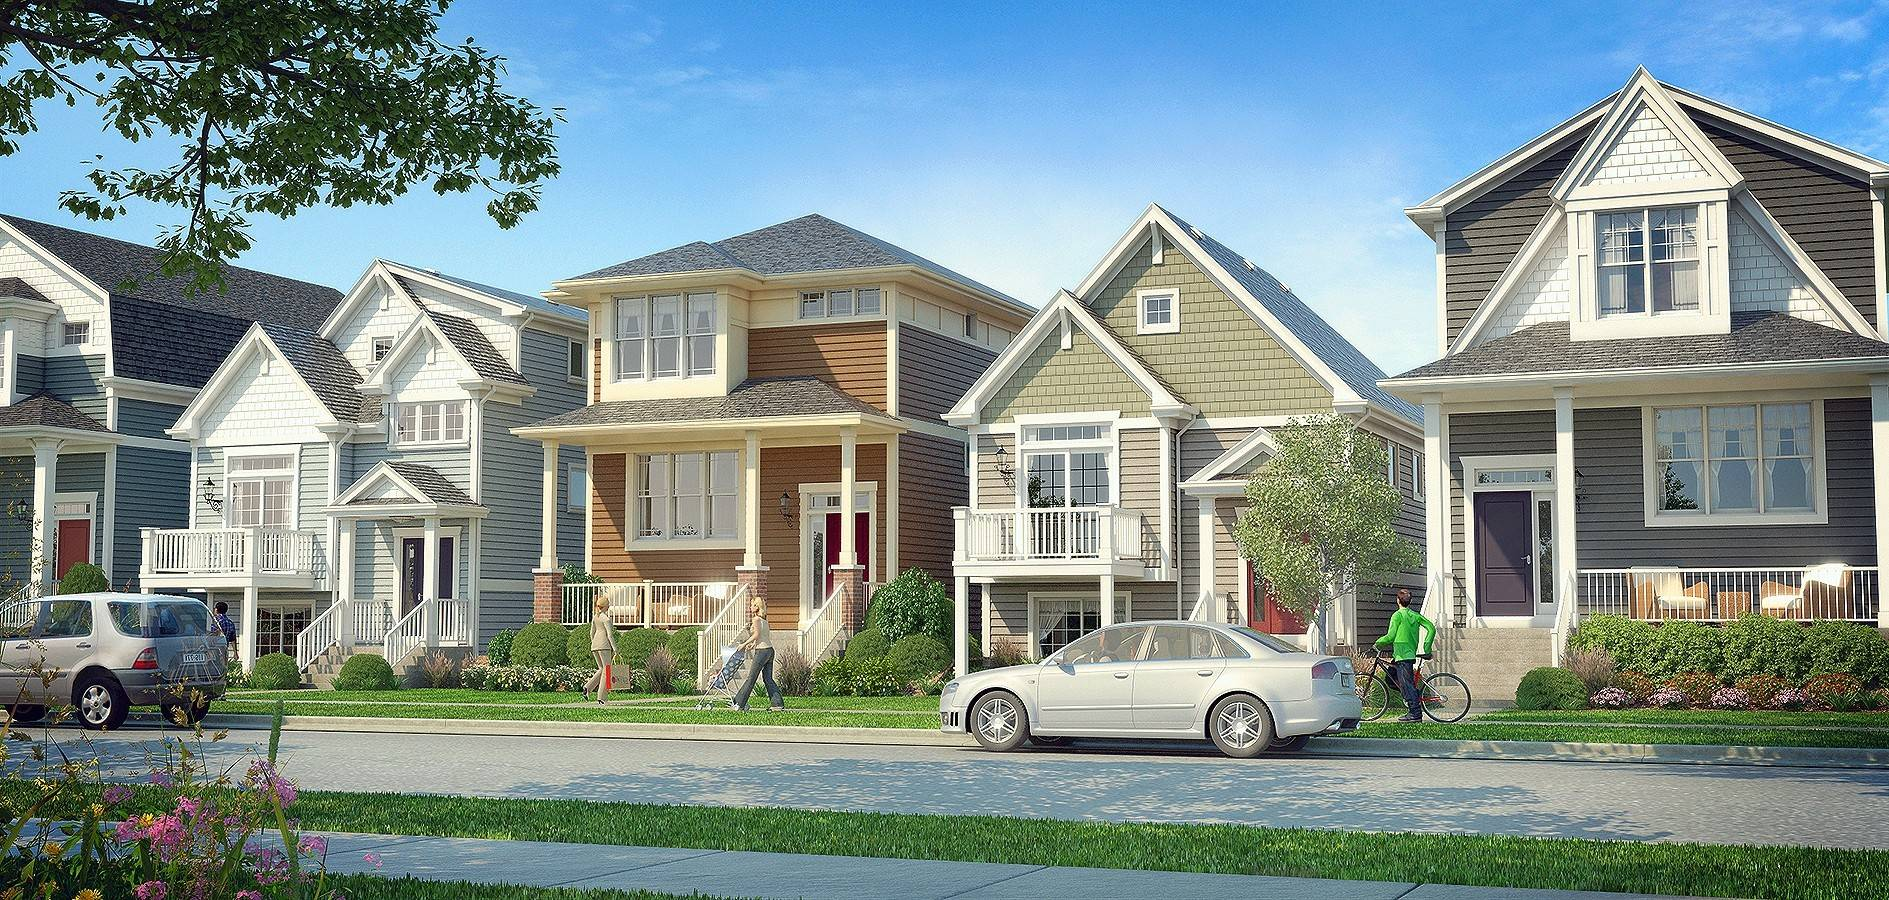 The Graham floor plan by Airhart Construction is available at College Station, a small development in downtown Wheaton near the College Avenue train station. It features a second-floor loft with a walkout, roof terrace.